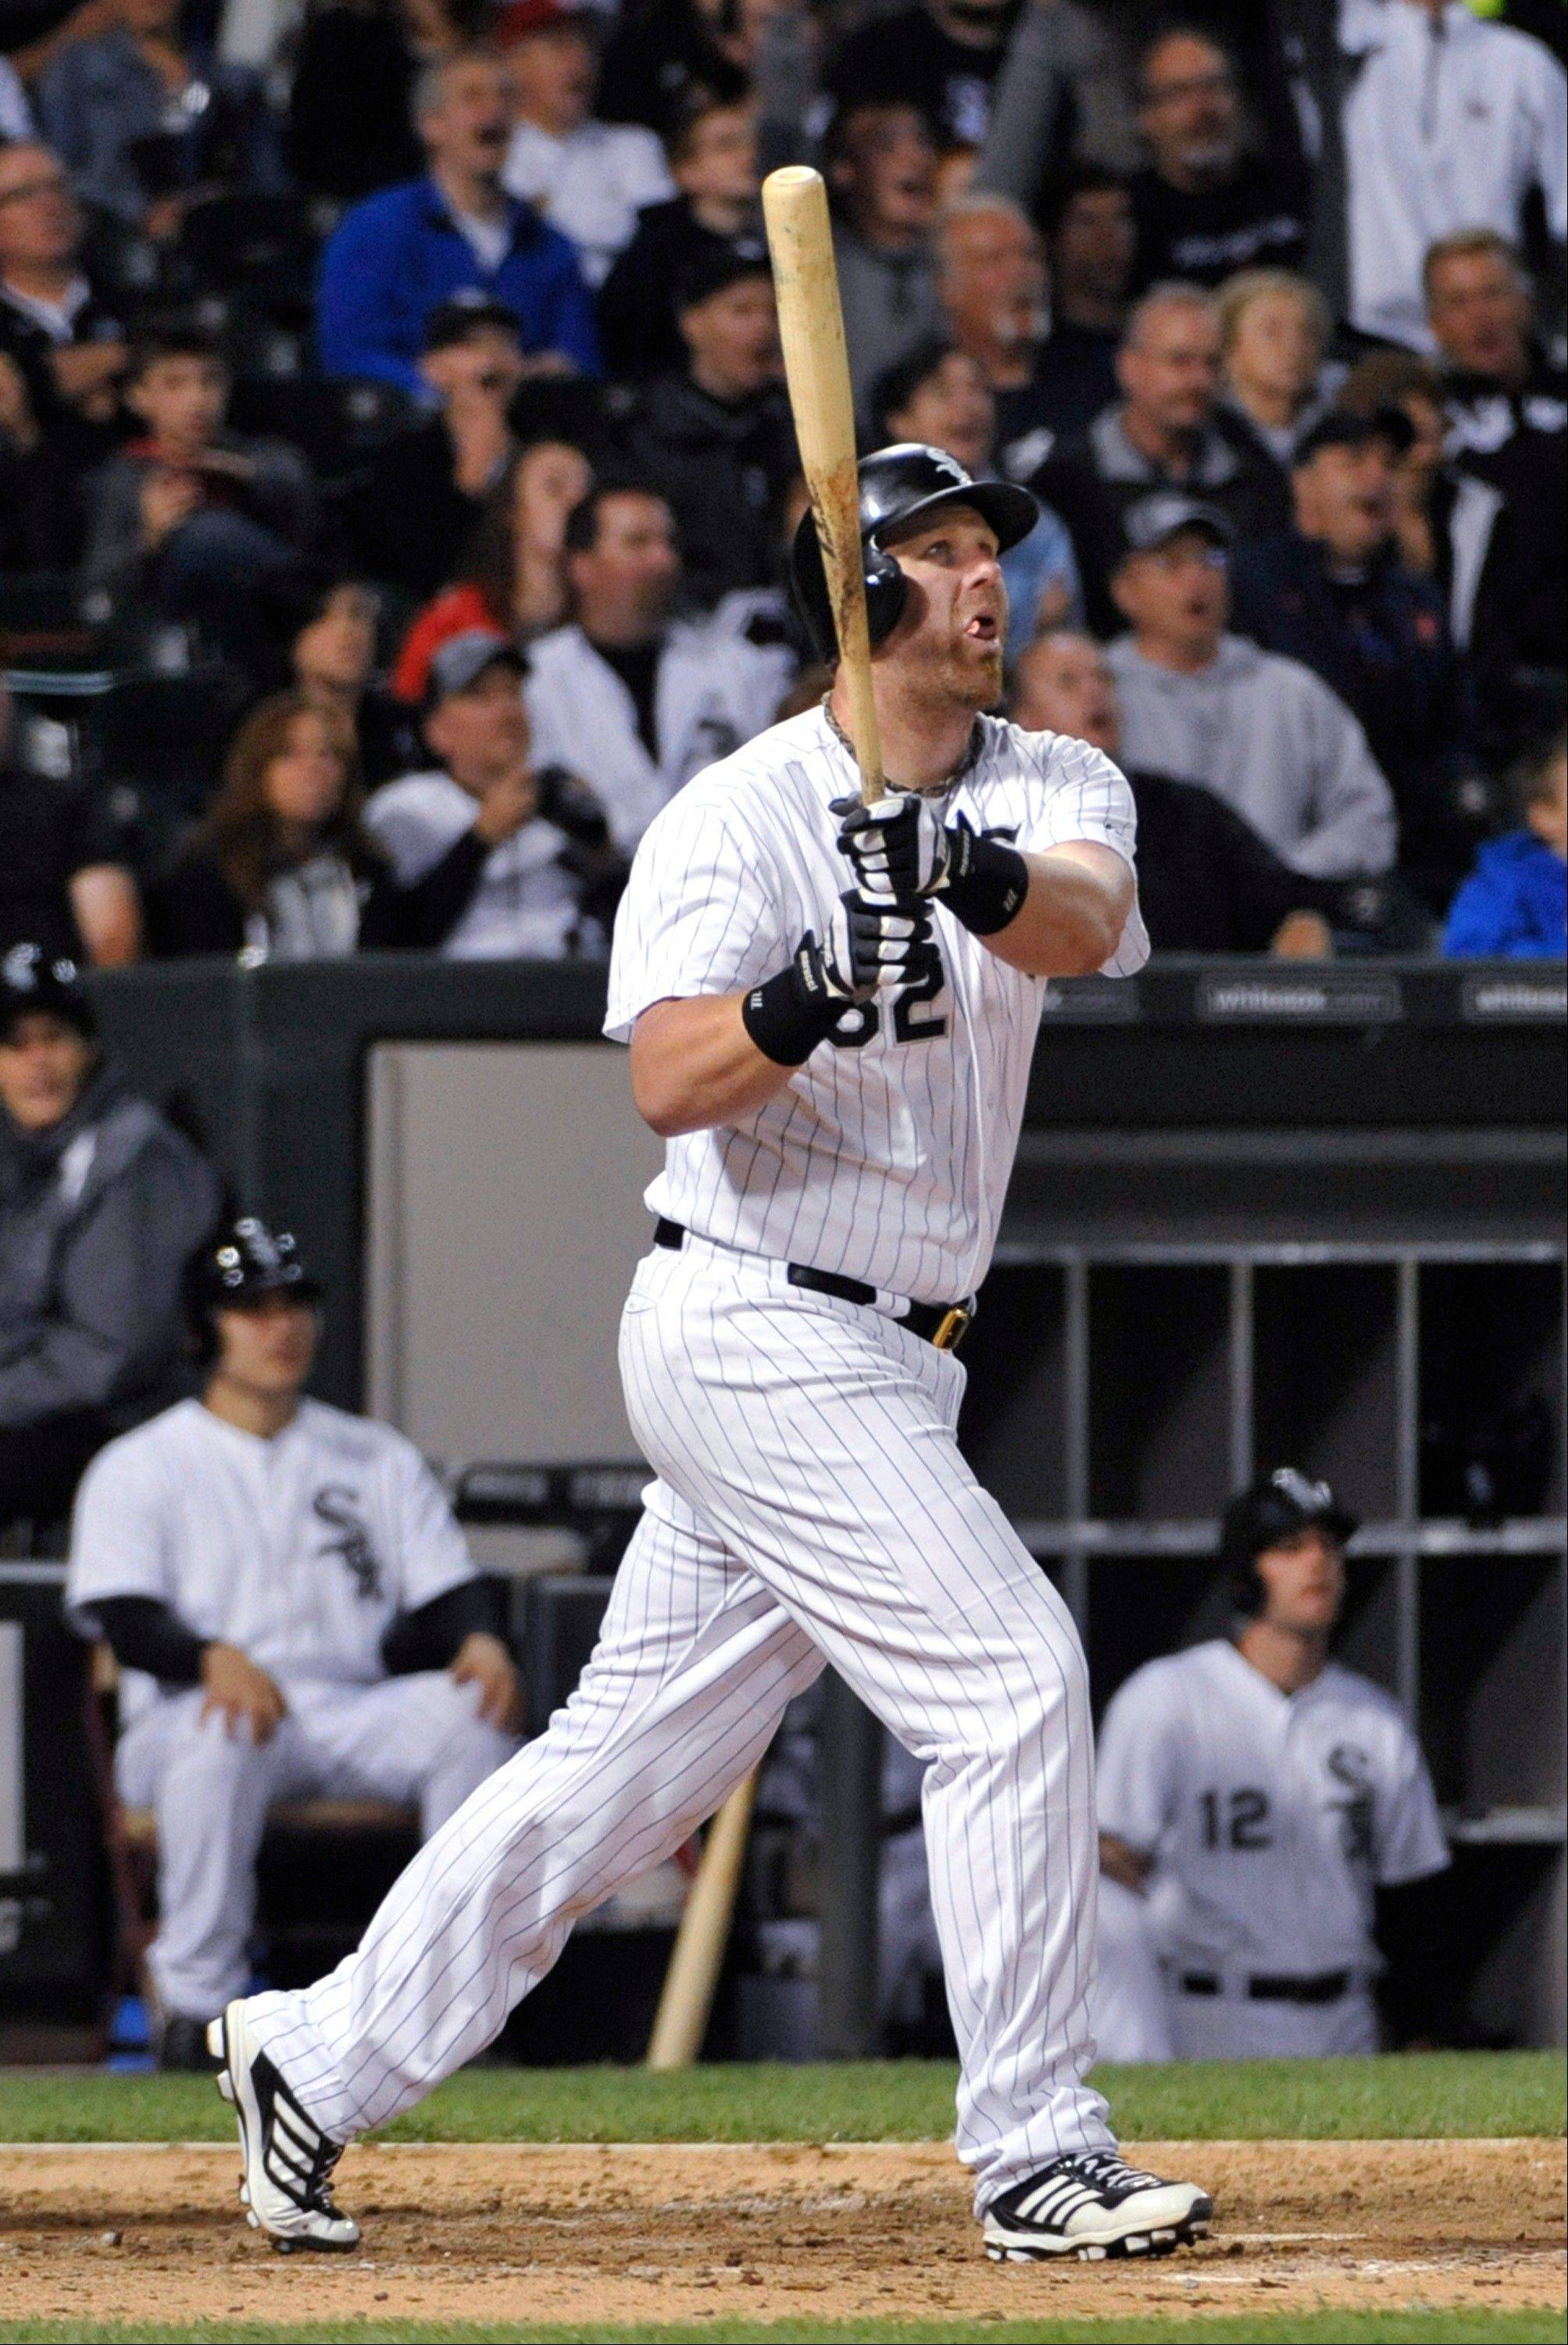 Chicago White Sox's Adam Dunn watches his two-run home run against the Baltimore Orioles during the seventh inning of a baseball game, Tuesday, July 2, 2013, in Chicago. (AP Photo/David Banks)